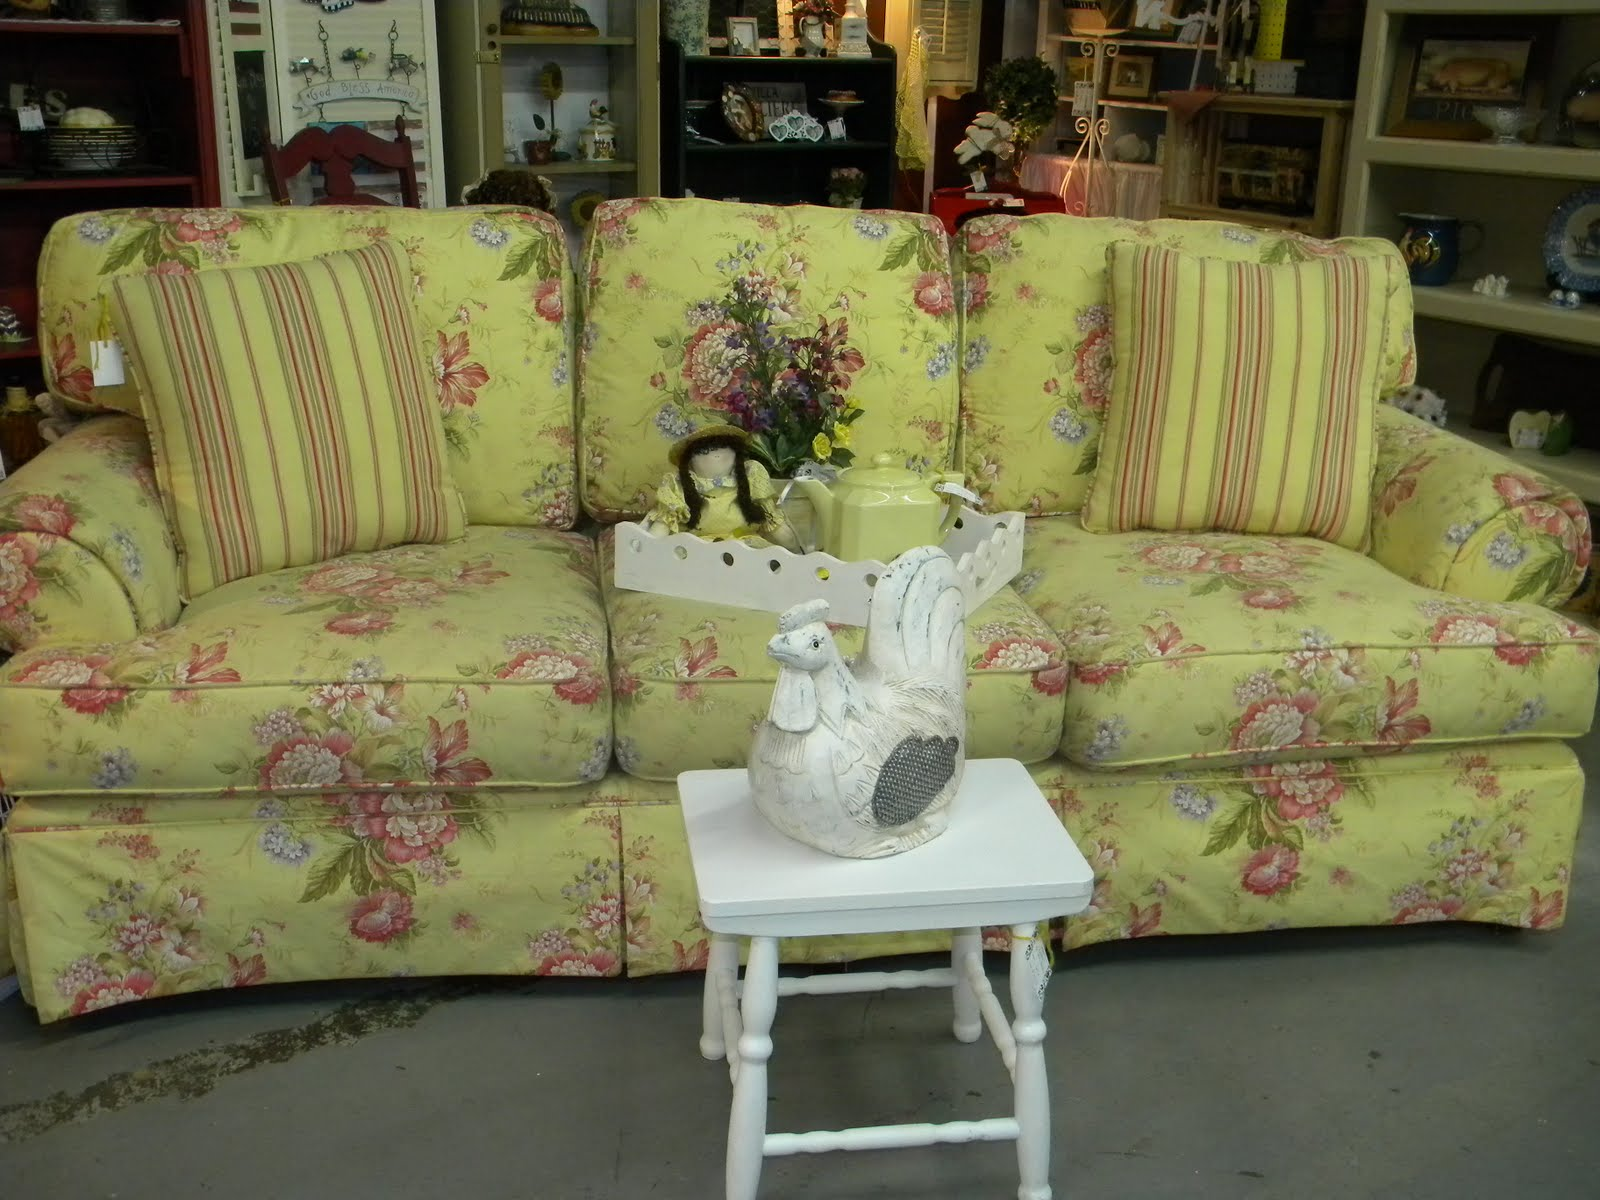 Shabby Chic Sofa Bed Uk Queen Size Sleeper Sectional Sofas Clutter Bugs Boutique Is It Or Country Cottage